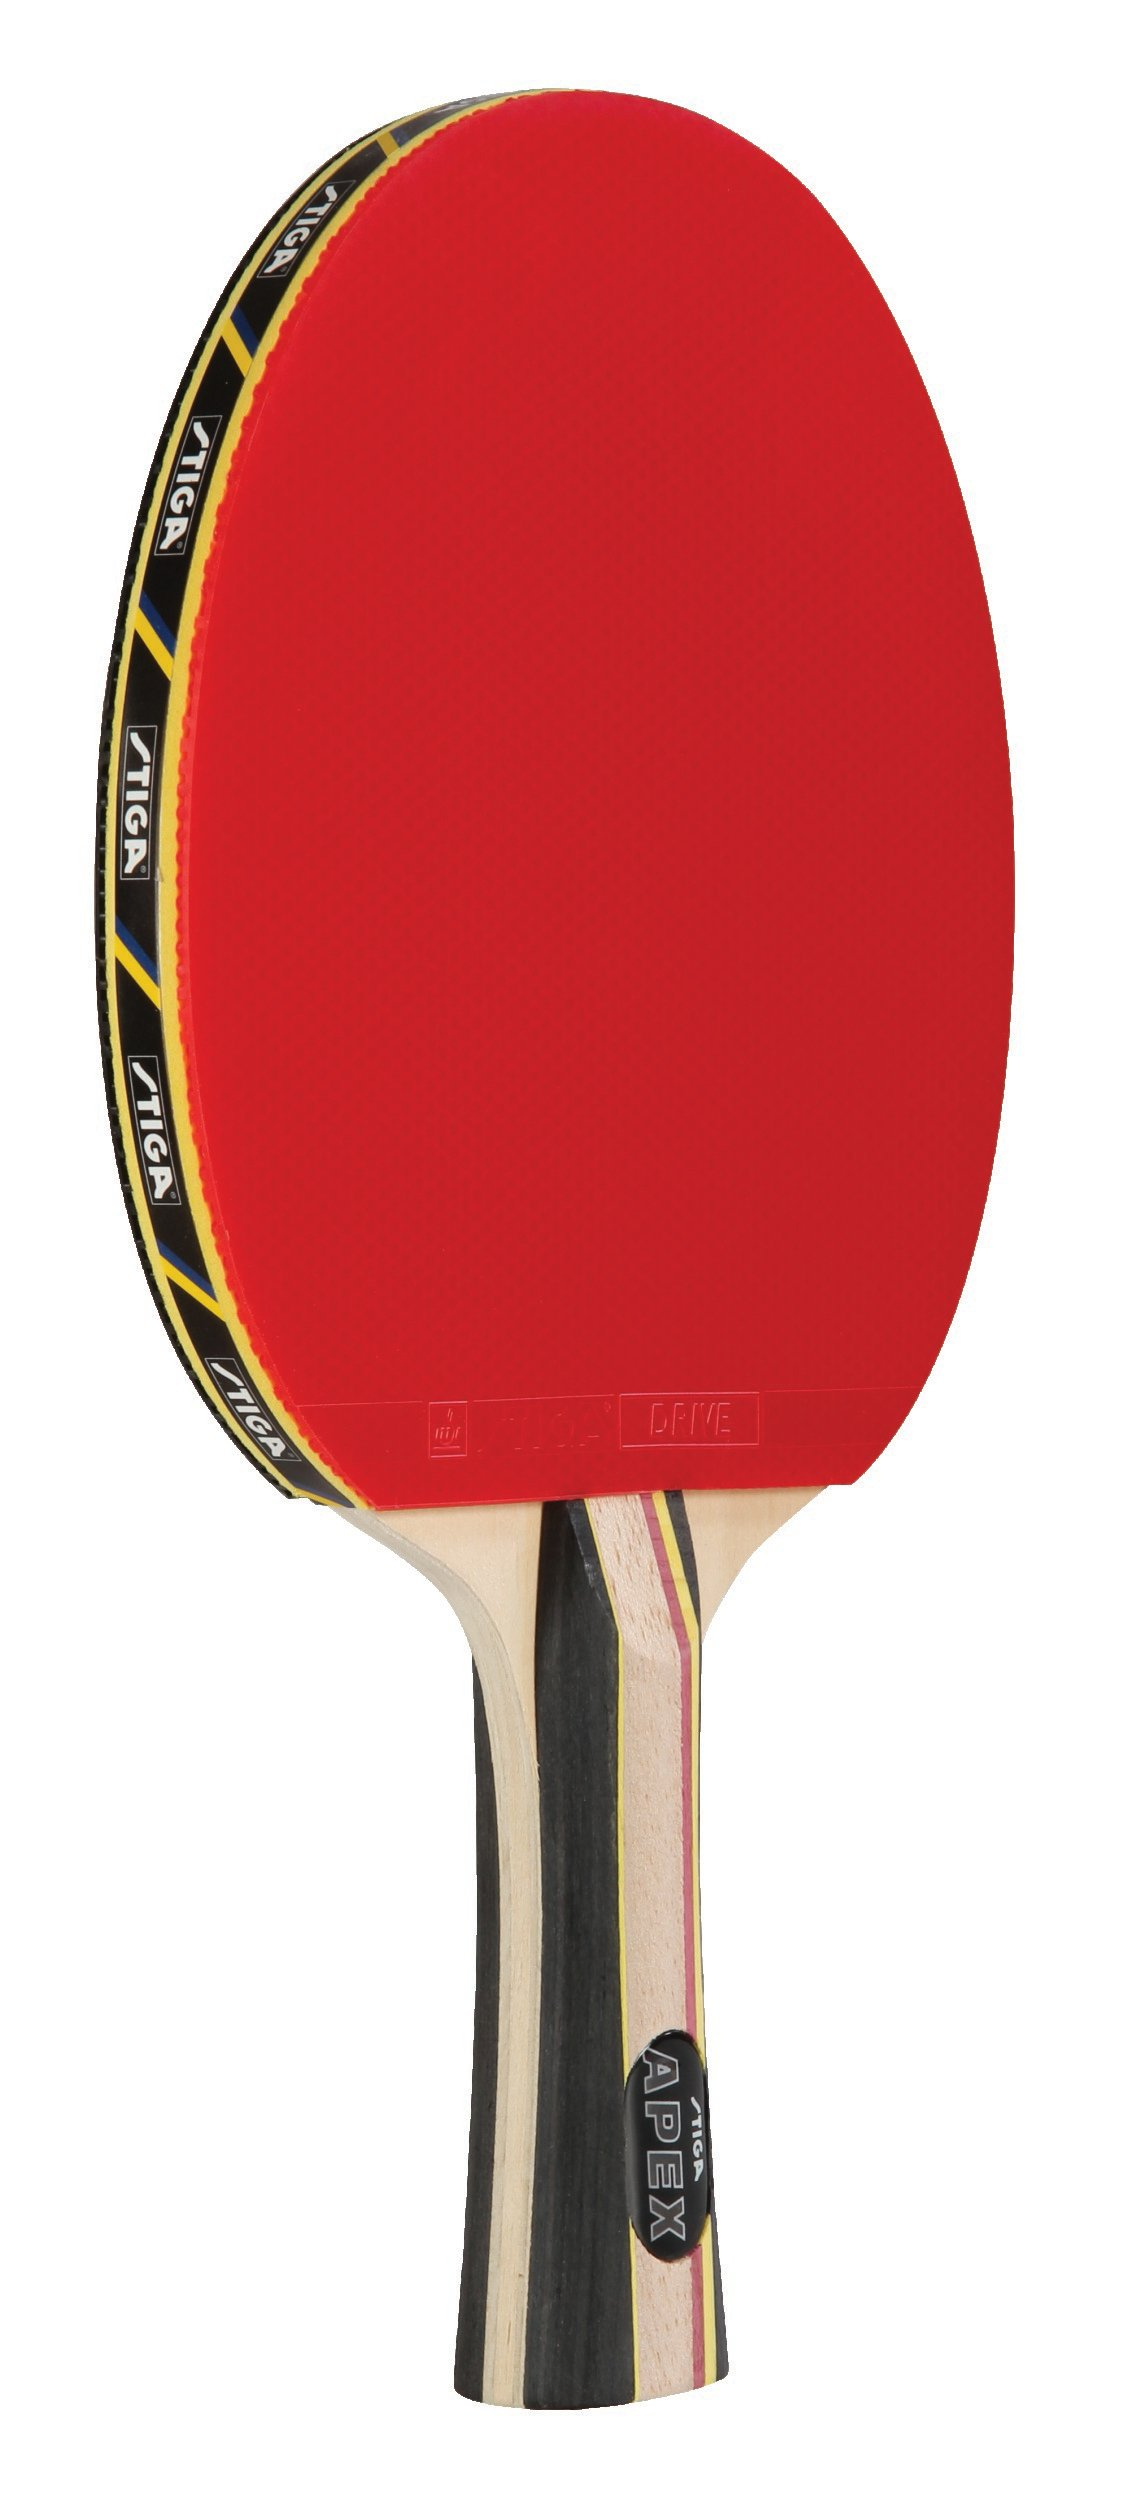 5882 in addition Best Table Tennis Paddle additionally Stock Vector Cartoon Leg Knee And Foot additionally Table Tennis Varsity besides Table Tennis Wallpaper. on ping pong racket